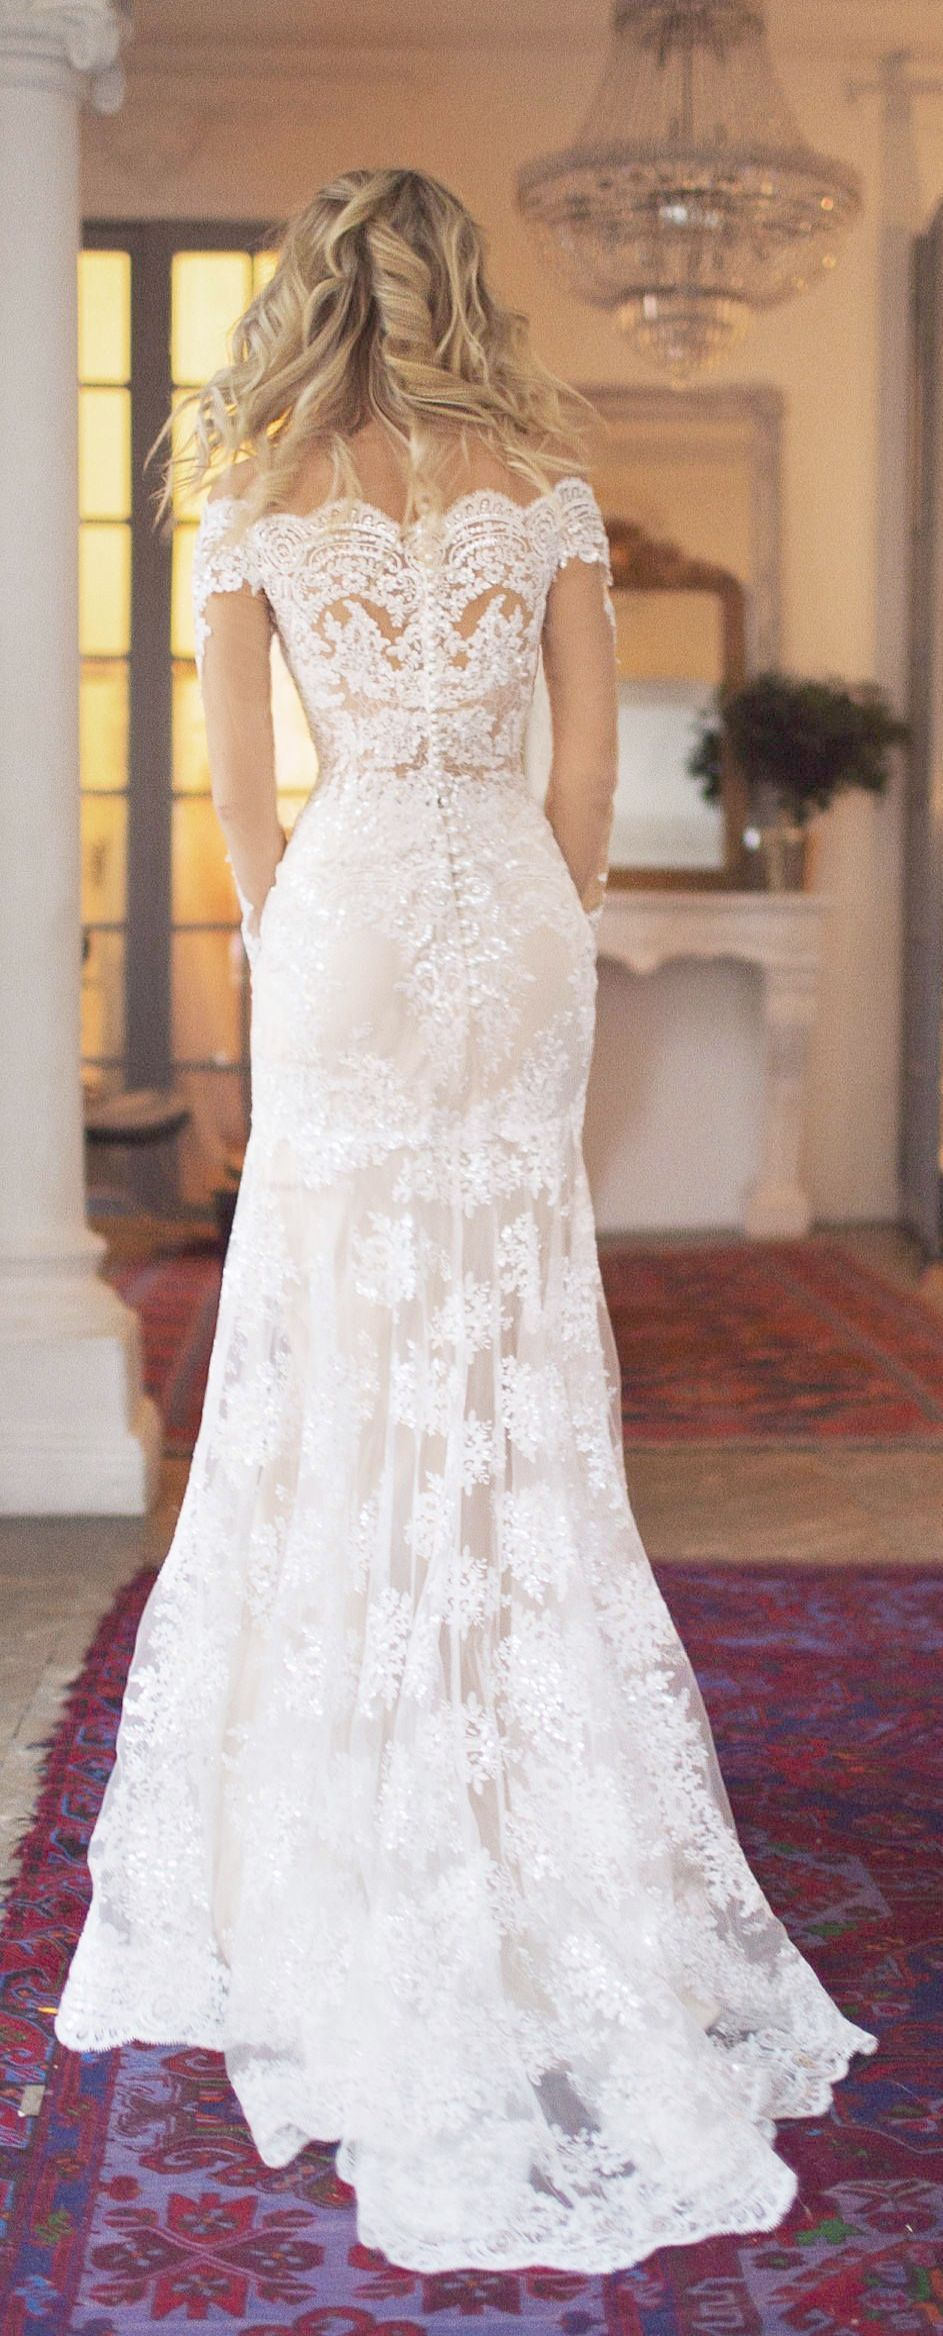 Where can i rent a wedding dress  Lace Wedding Dress Detachable Sleeves Lace Wedding Dresses To Hire